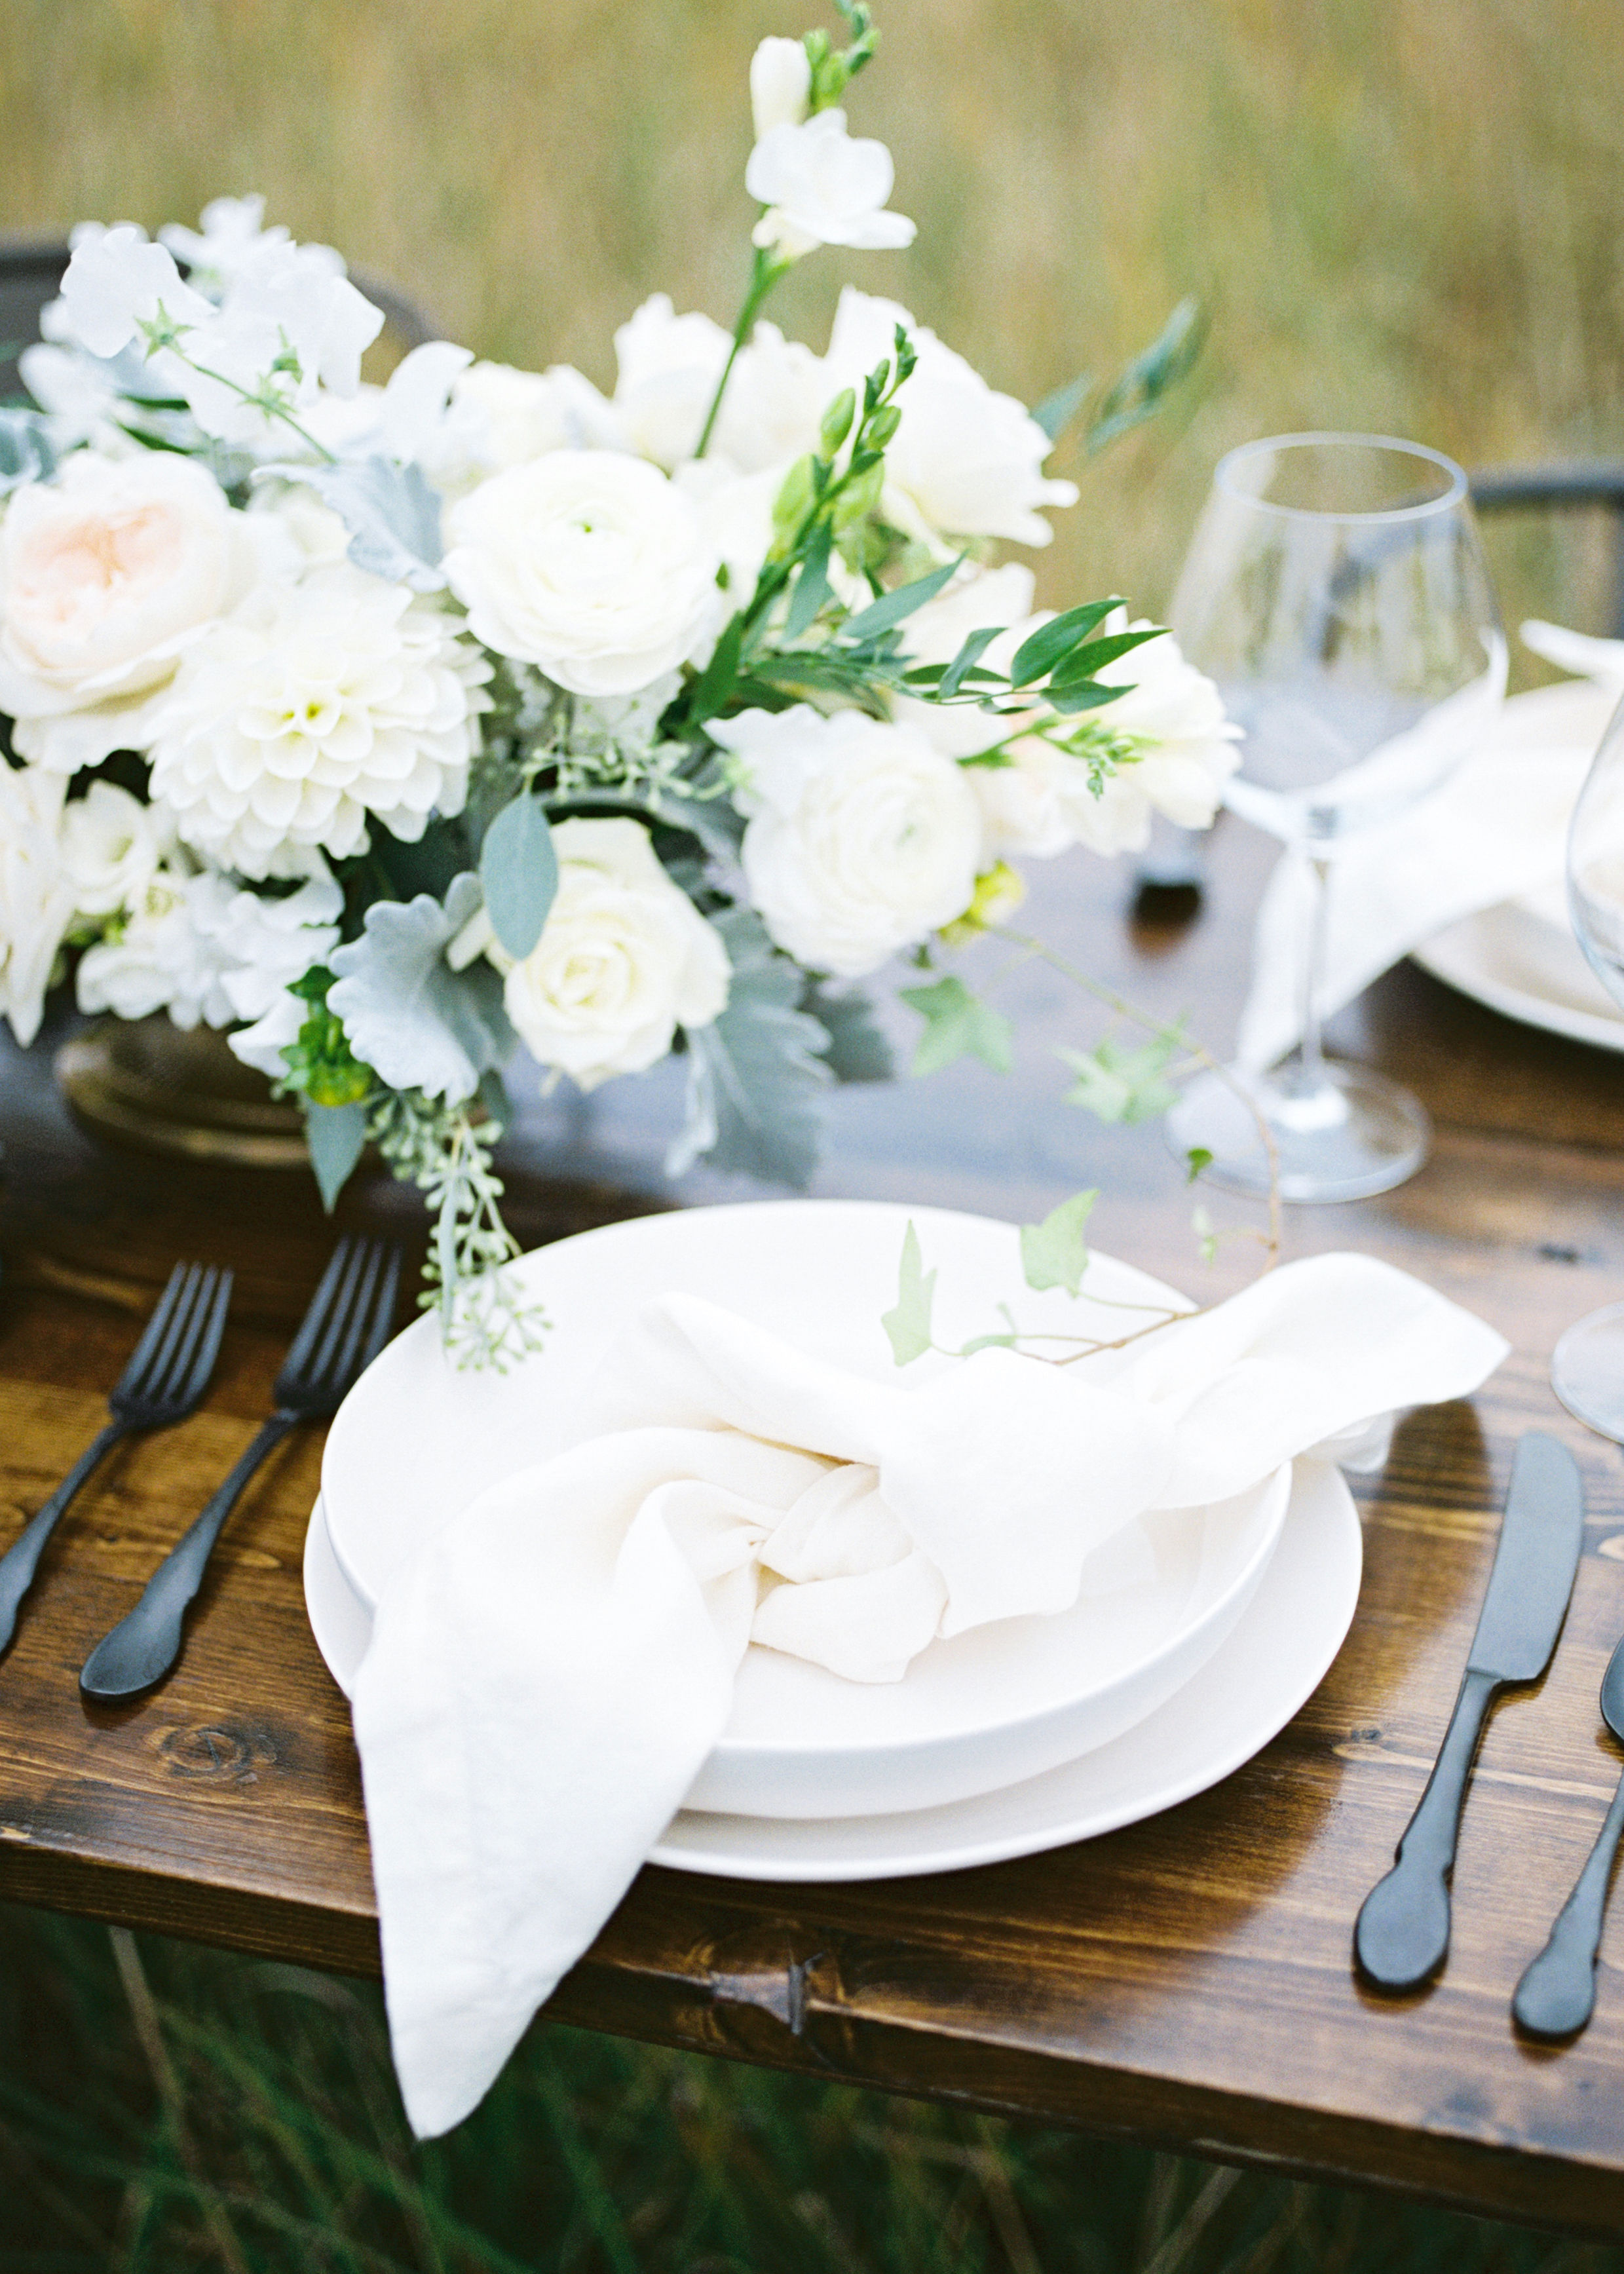 Styled Table Design